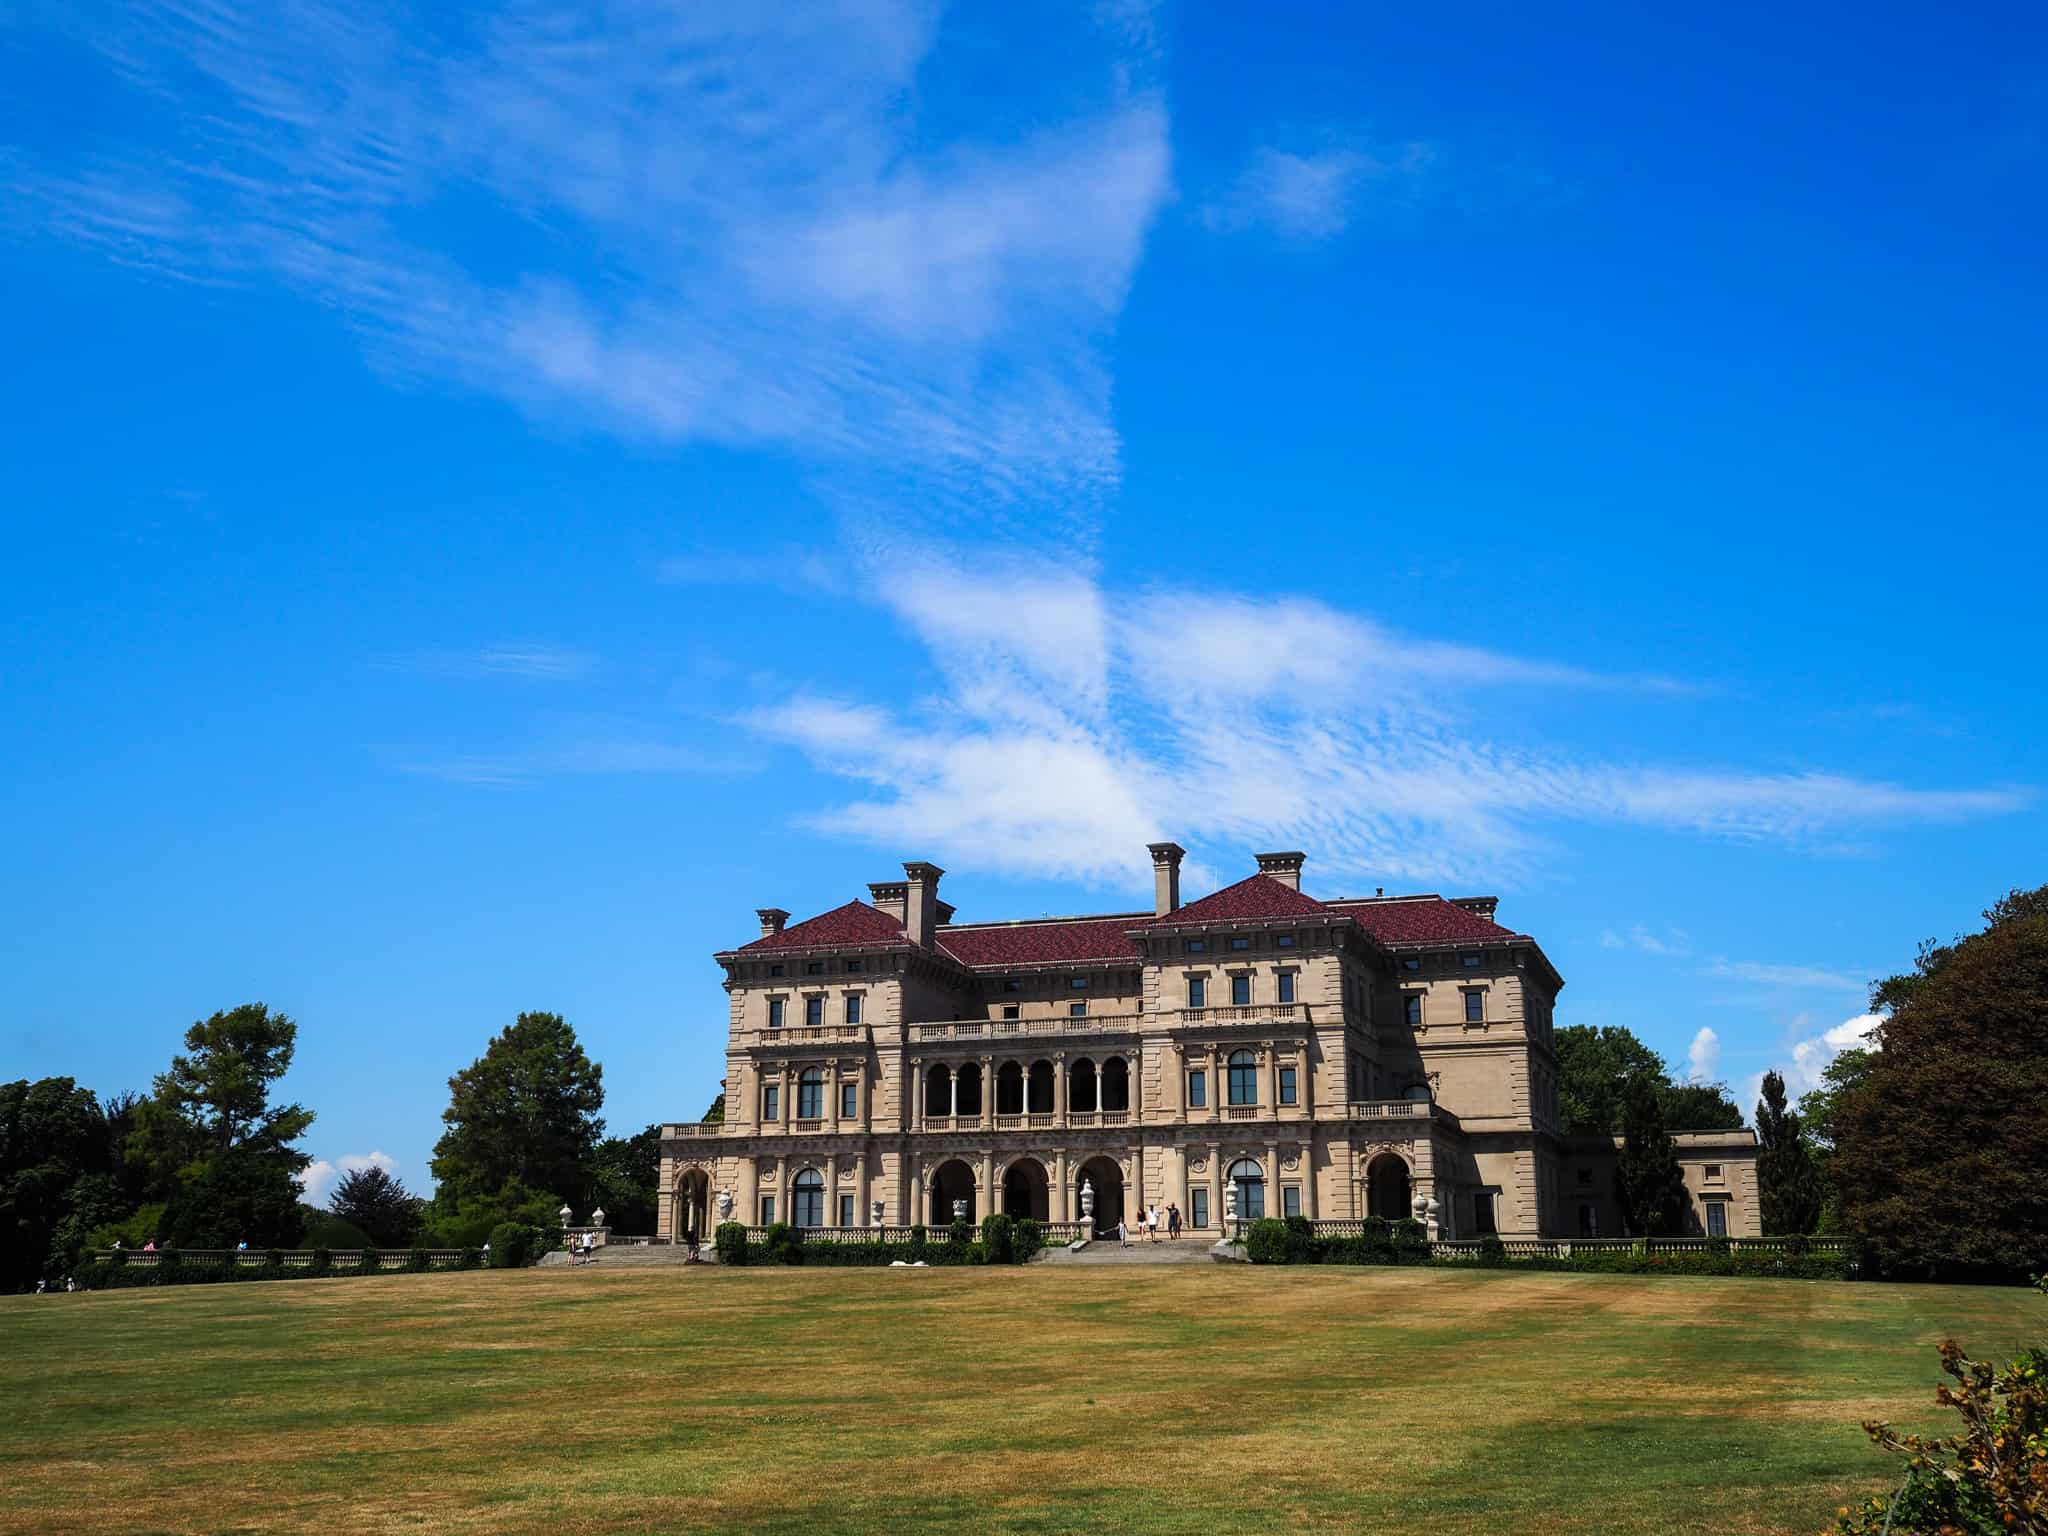 The Breakers is the grandest of all the Gilded Age mansions on the Cliff Walk. The mansion has incredible sweeping views of the ocean.